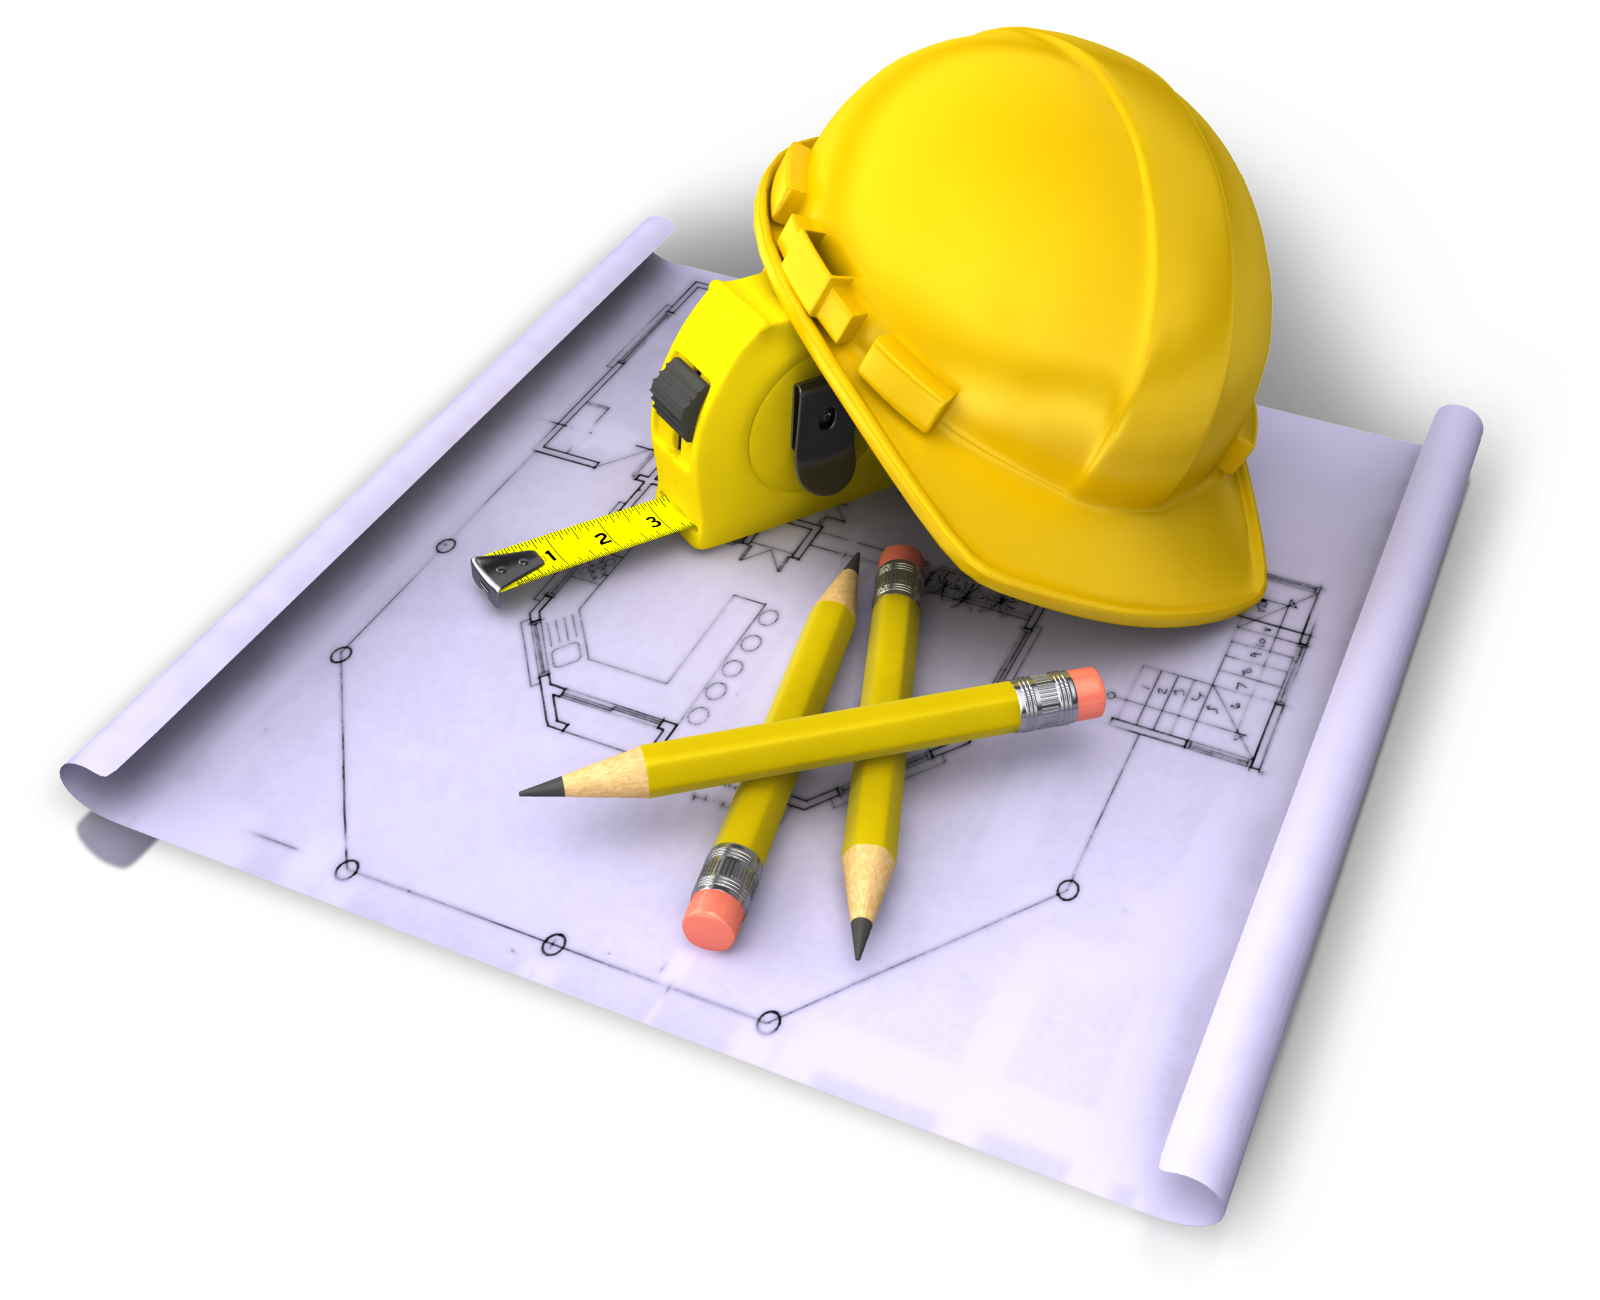 Engineer clipart engineer job. Services bc baaf group